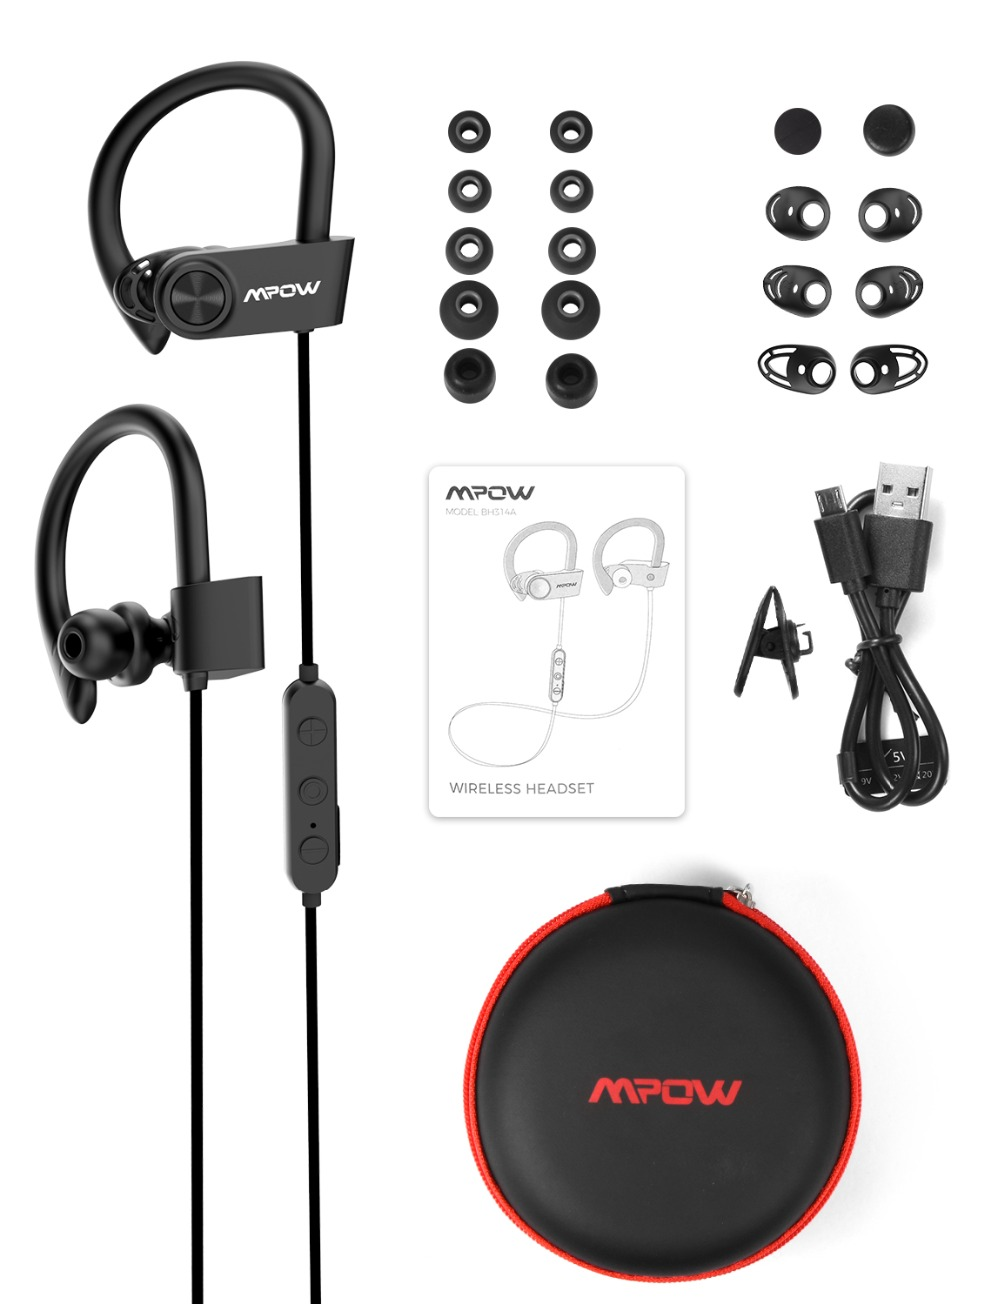 Mpow D9 Bluetooth 5.0 Earphone Aptx Wireless Sport Headphone With IPX7 Waterproof Noise Cancelling Mic 18H Playtime For Running (7)